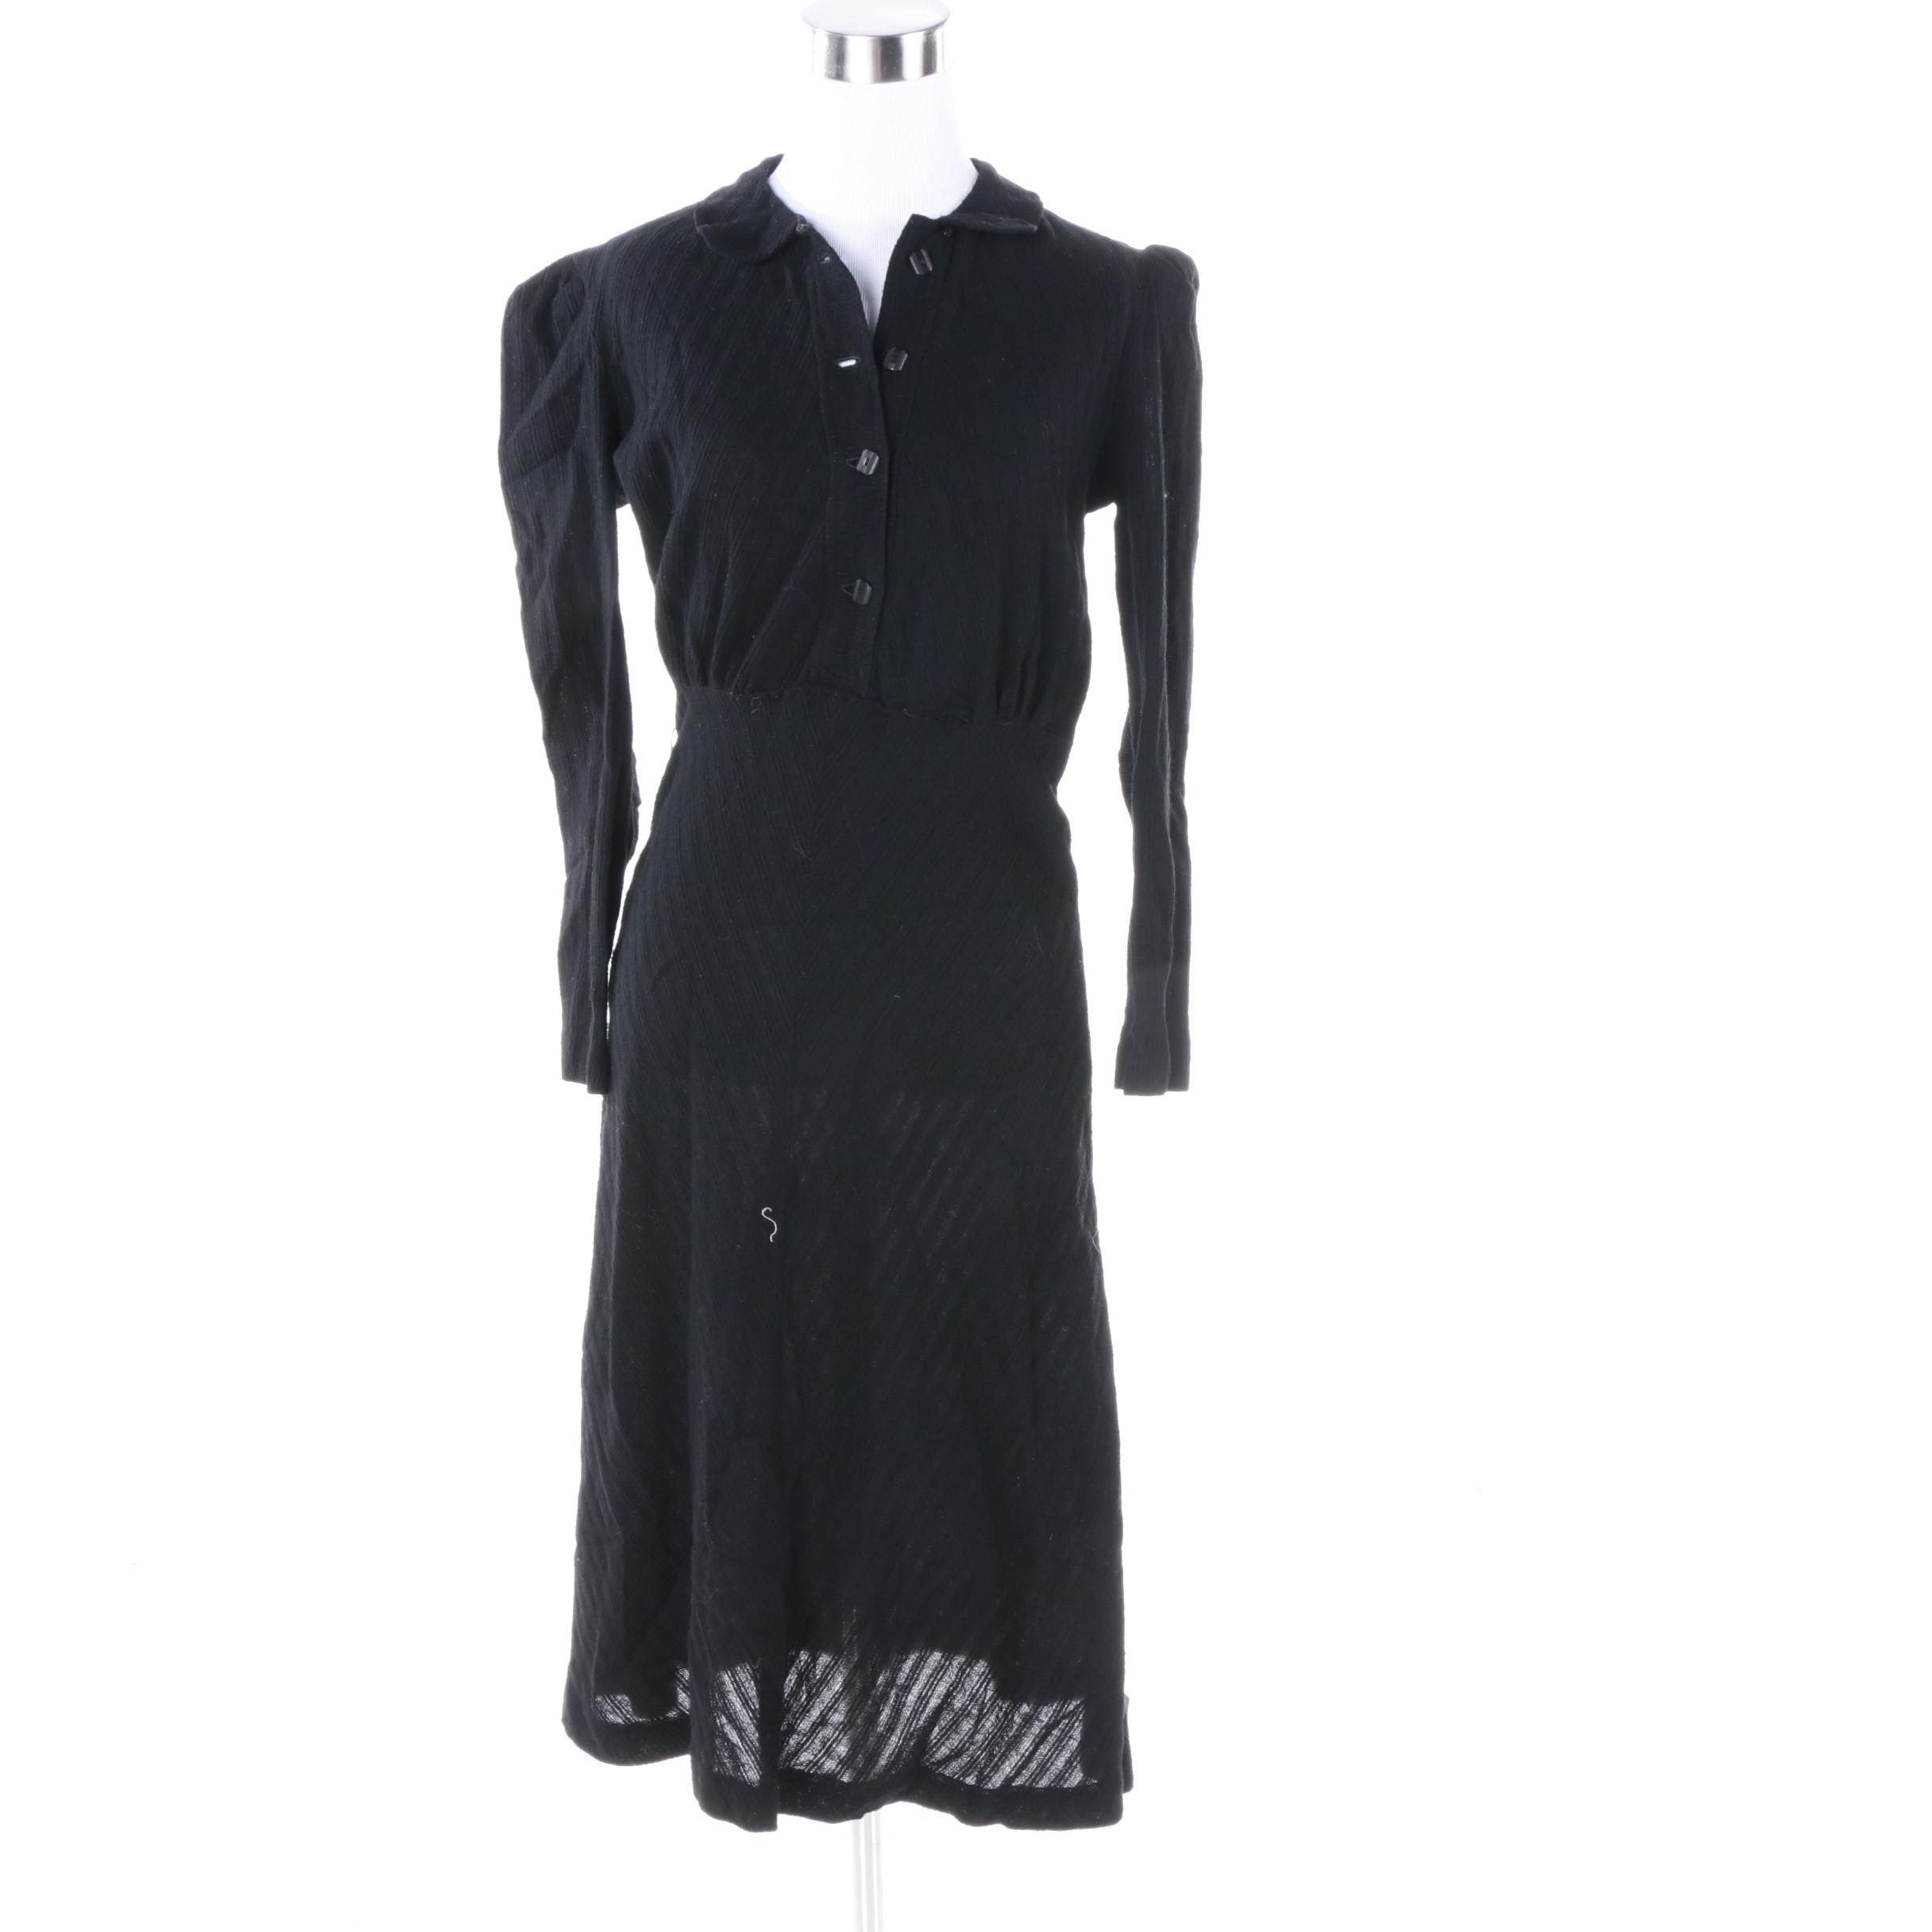 Vintage Black Cotton Dress